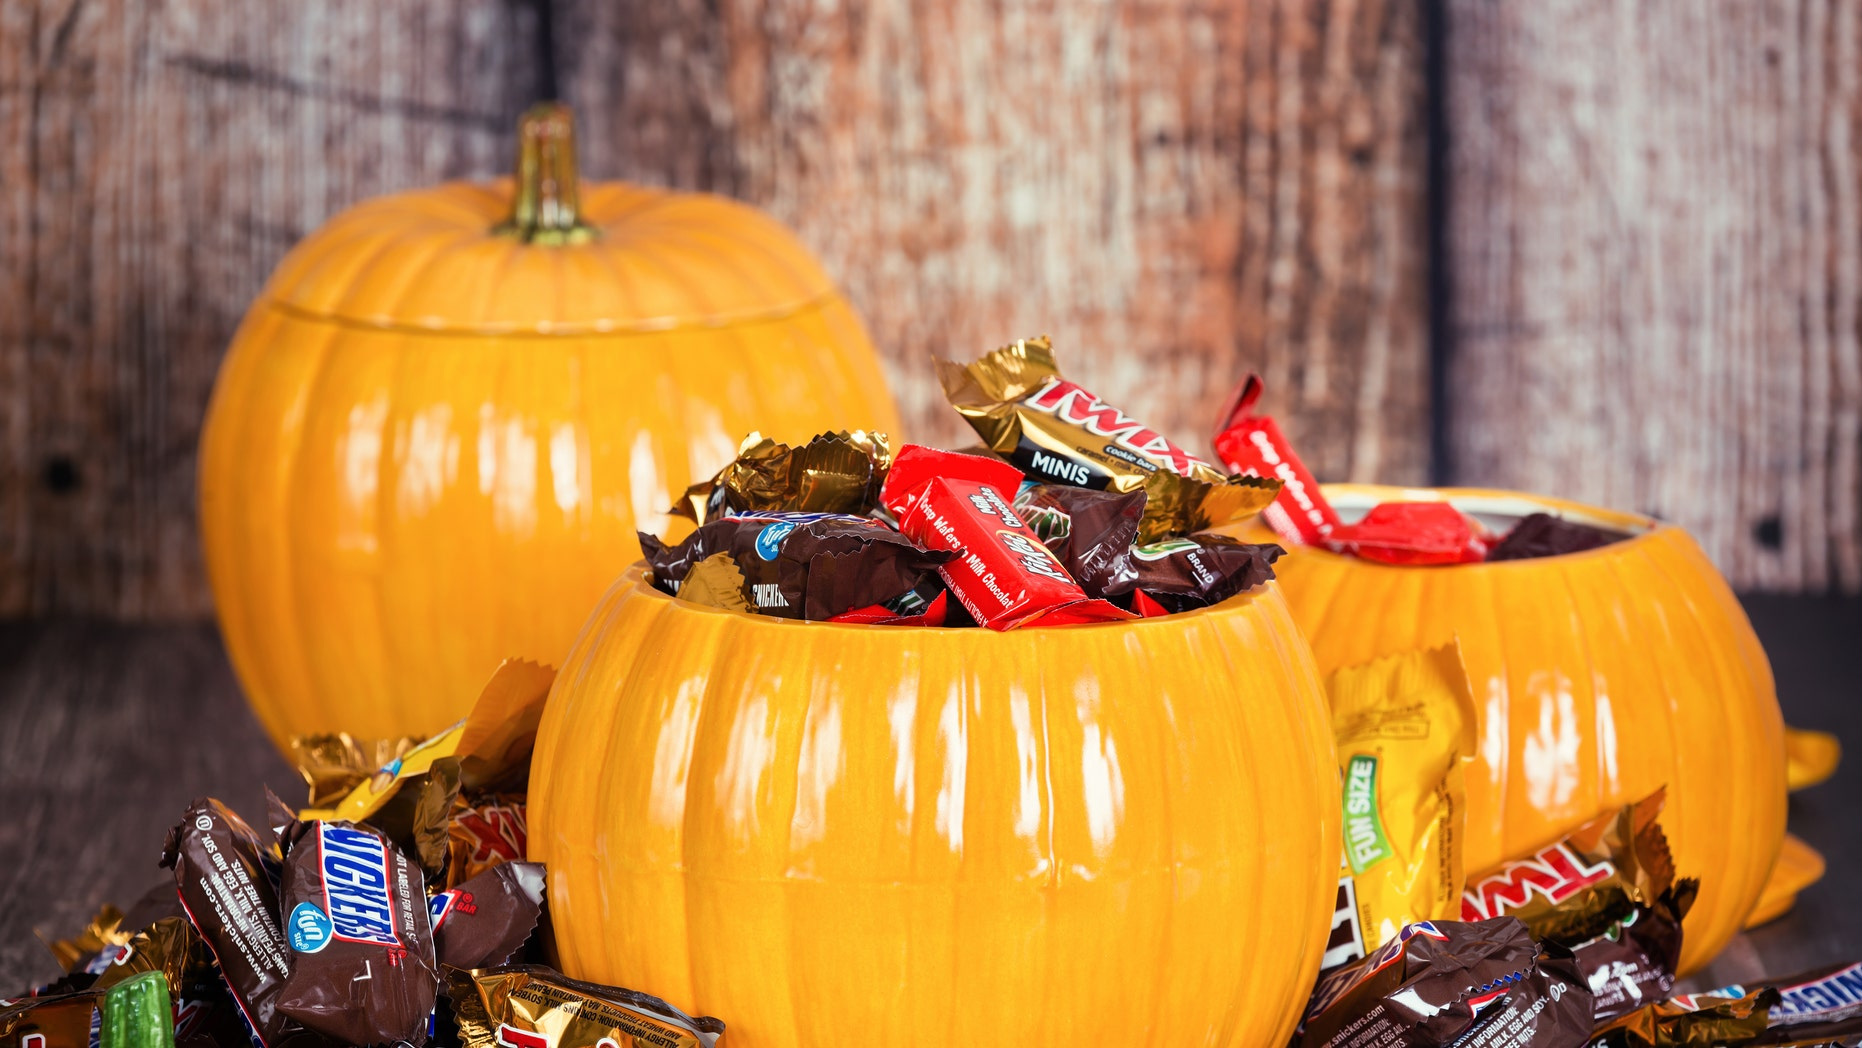 Dallas, United States - October 31, 2015: Decorative pumpkins filled with assorted Halloween chocolate candy made by Mars, Incorporated and the Hershey Company.